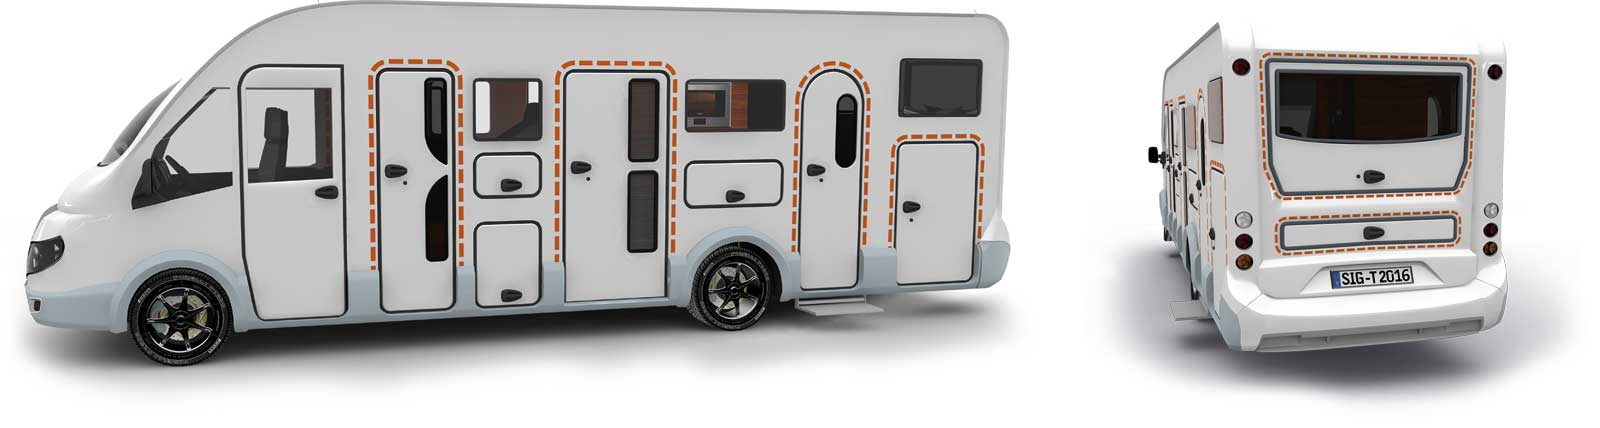 Satisfied tegos customers with Adria caravans and RVs